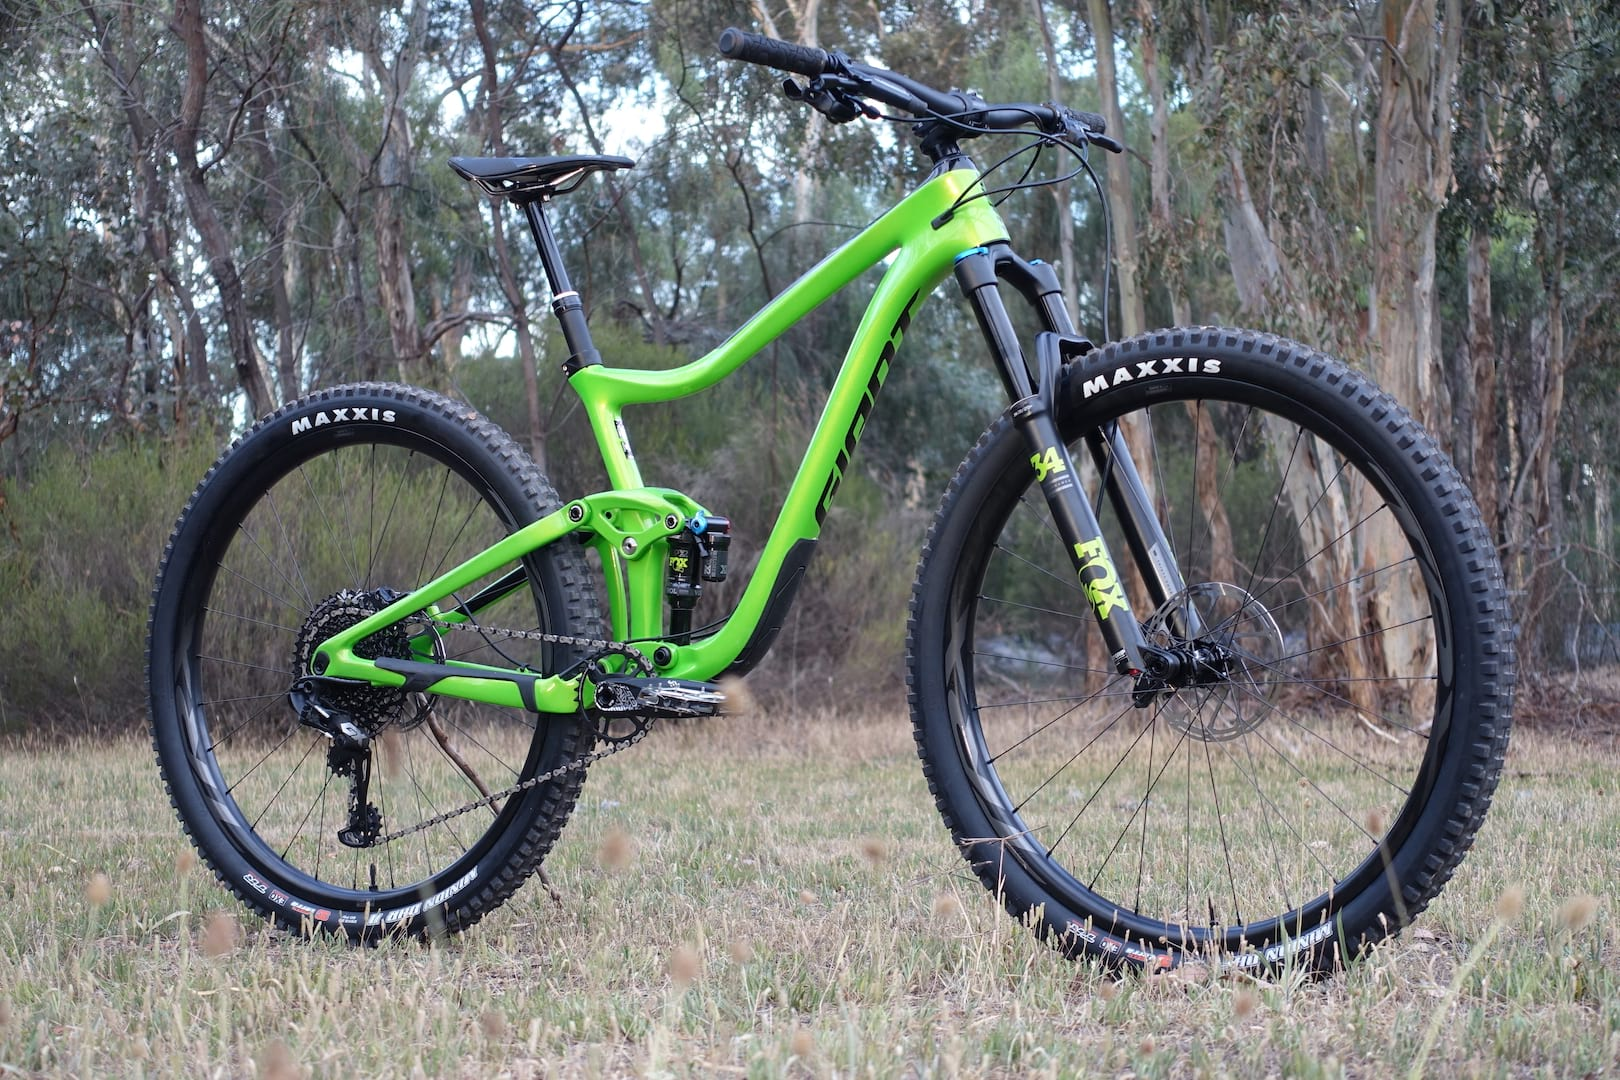 ad271ea4617 Is This 2019 Trance The Most Progressive Giant Mountain Bike Ever?